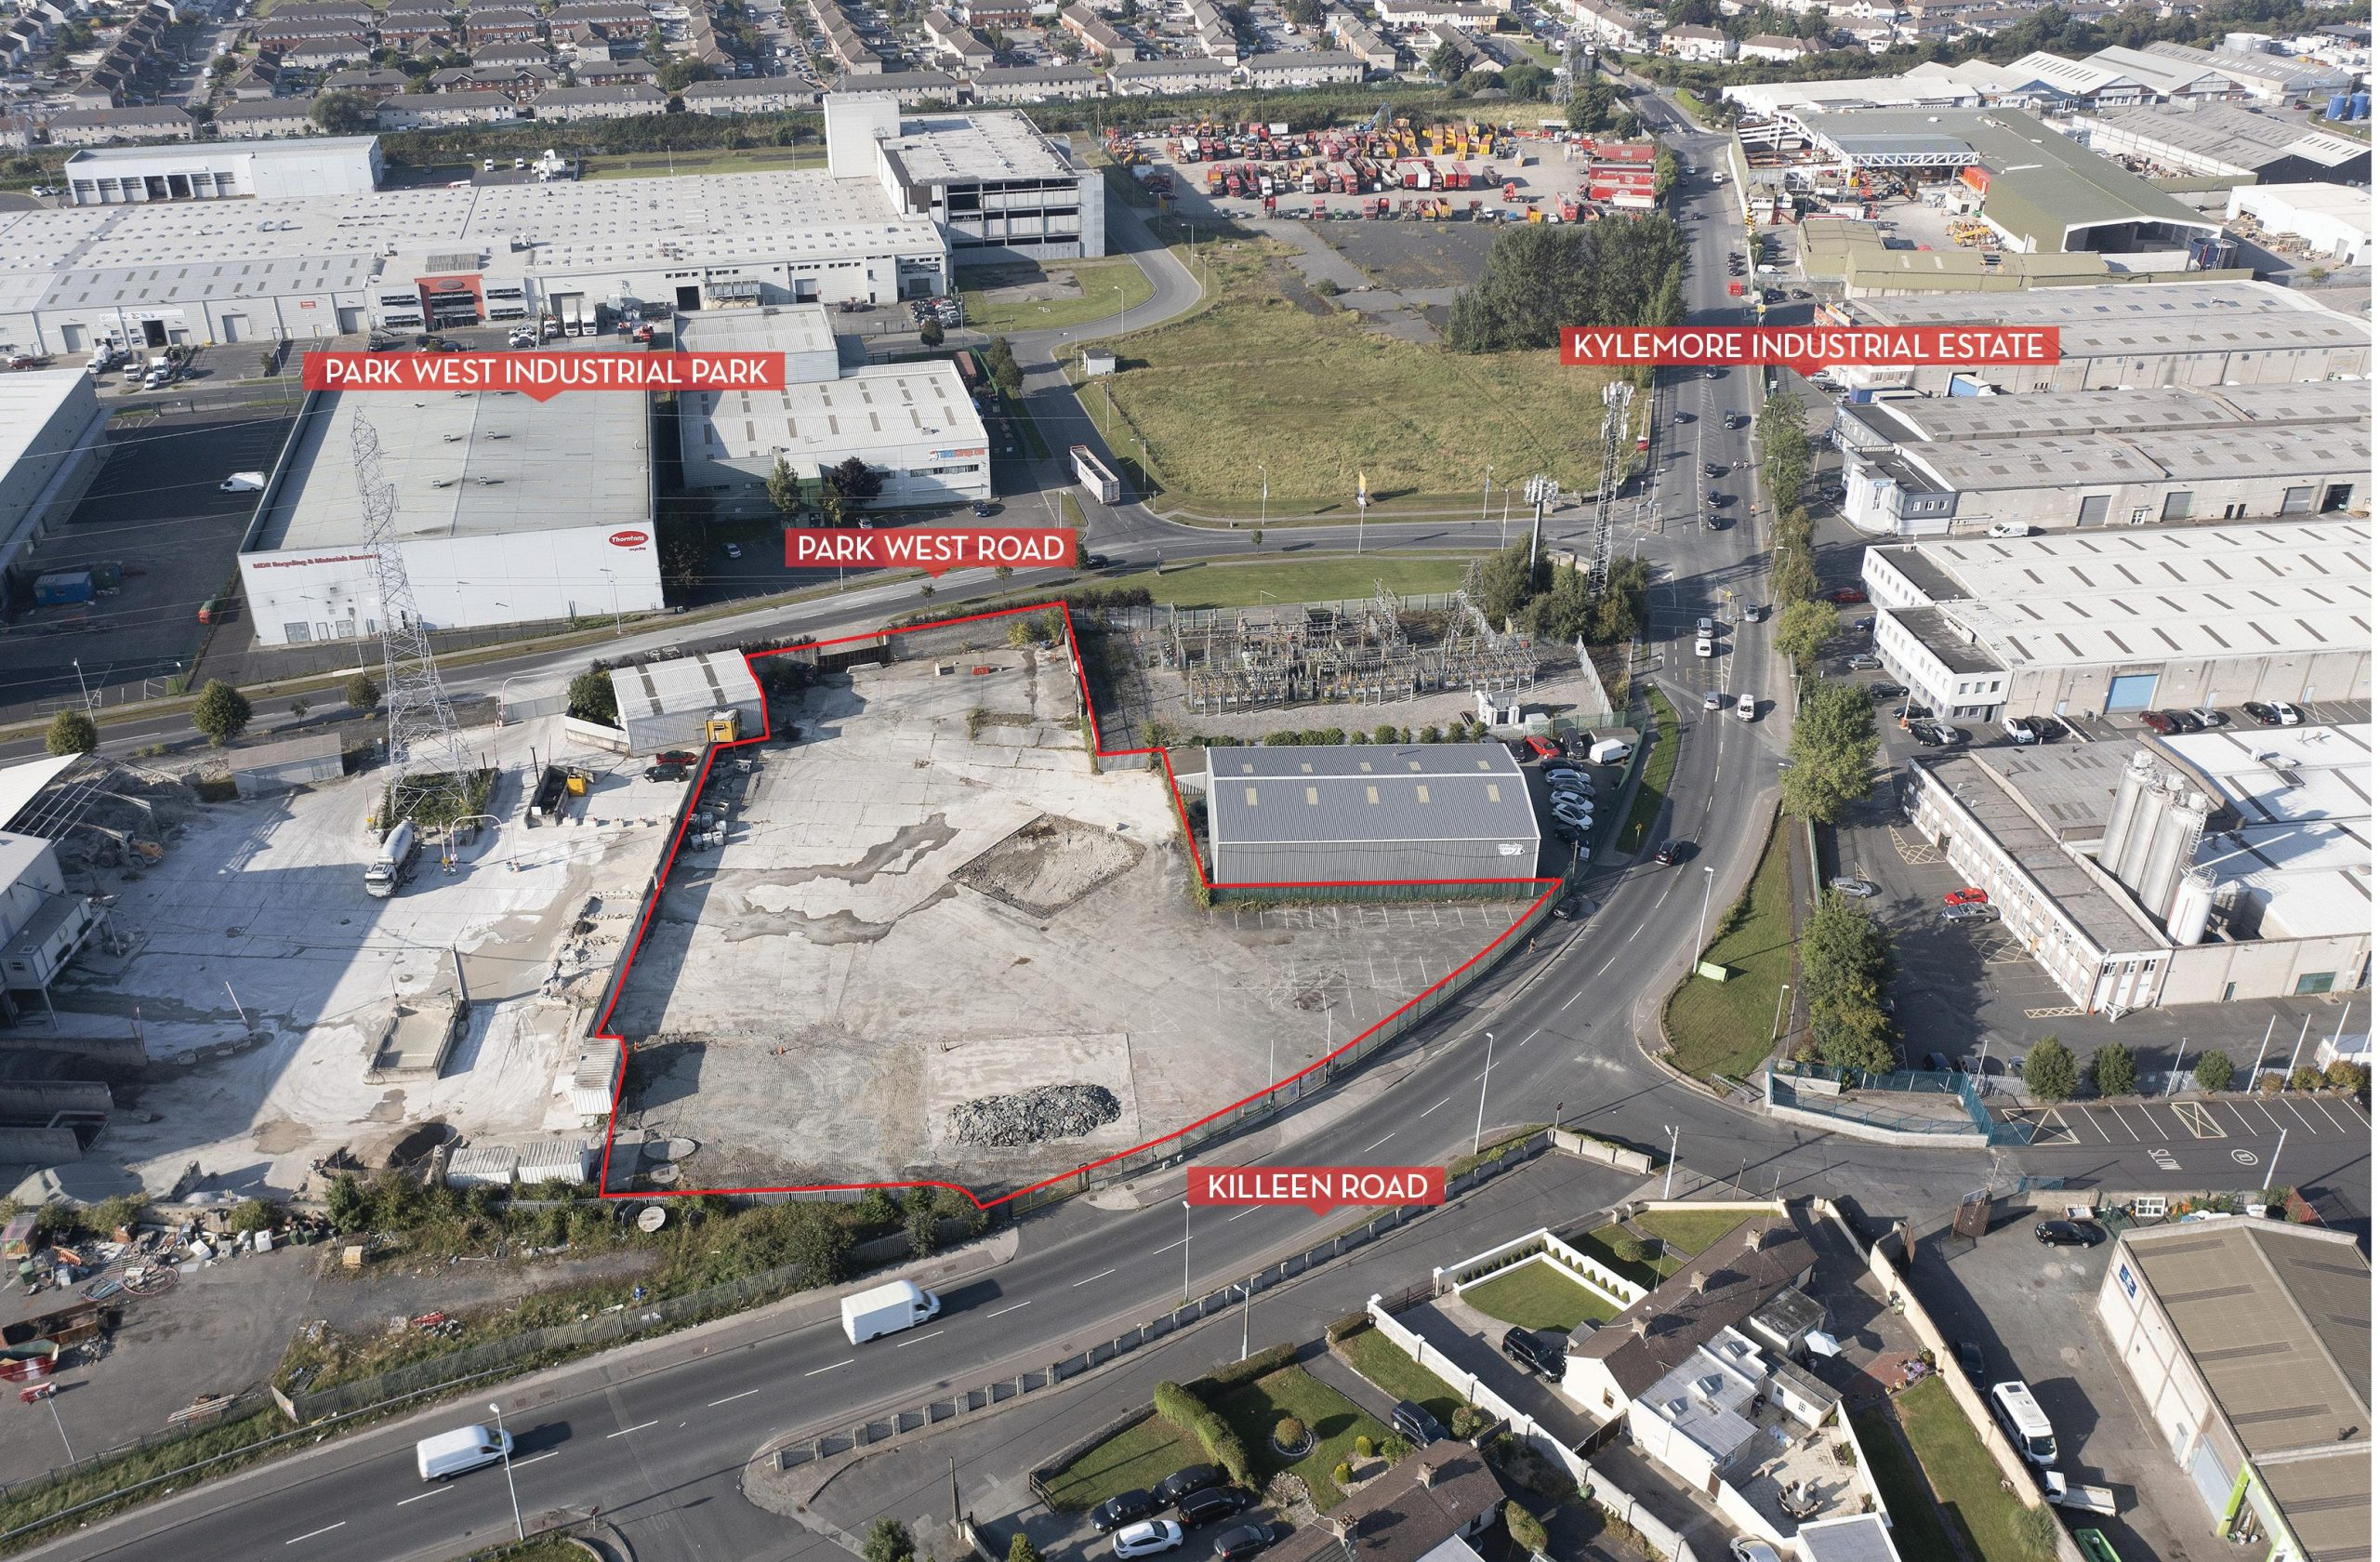 1.4 acres at Killeen Road, Cherry Orchard,  Dublin 10